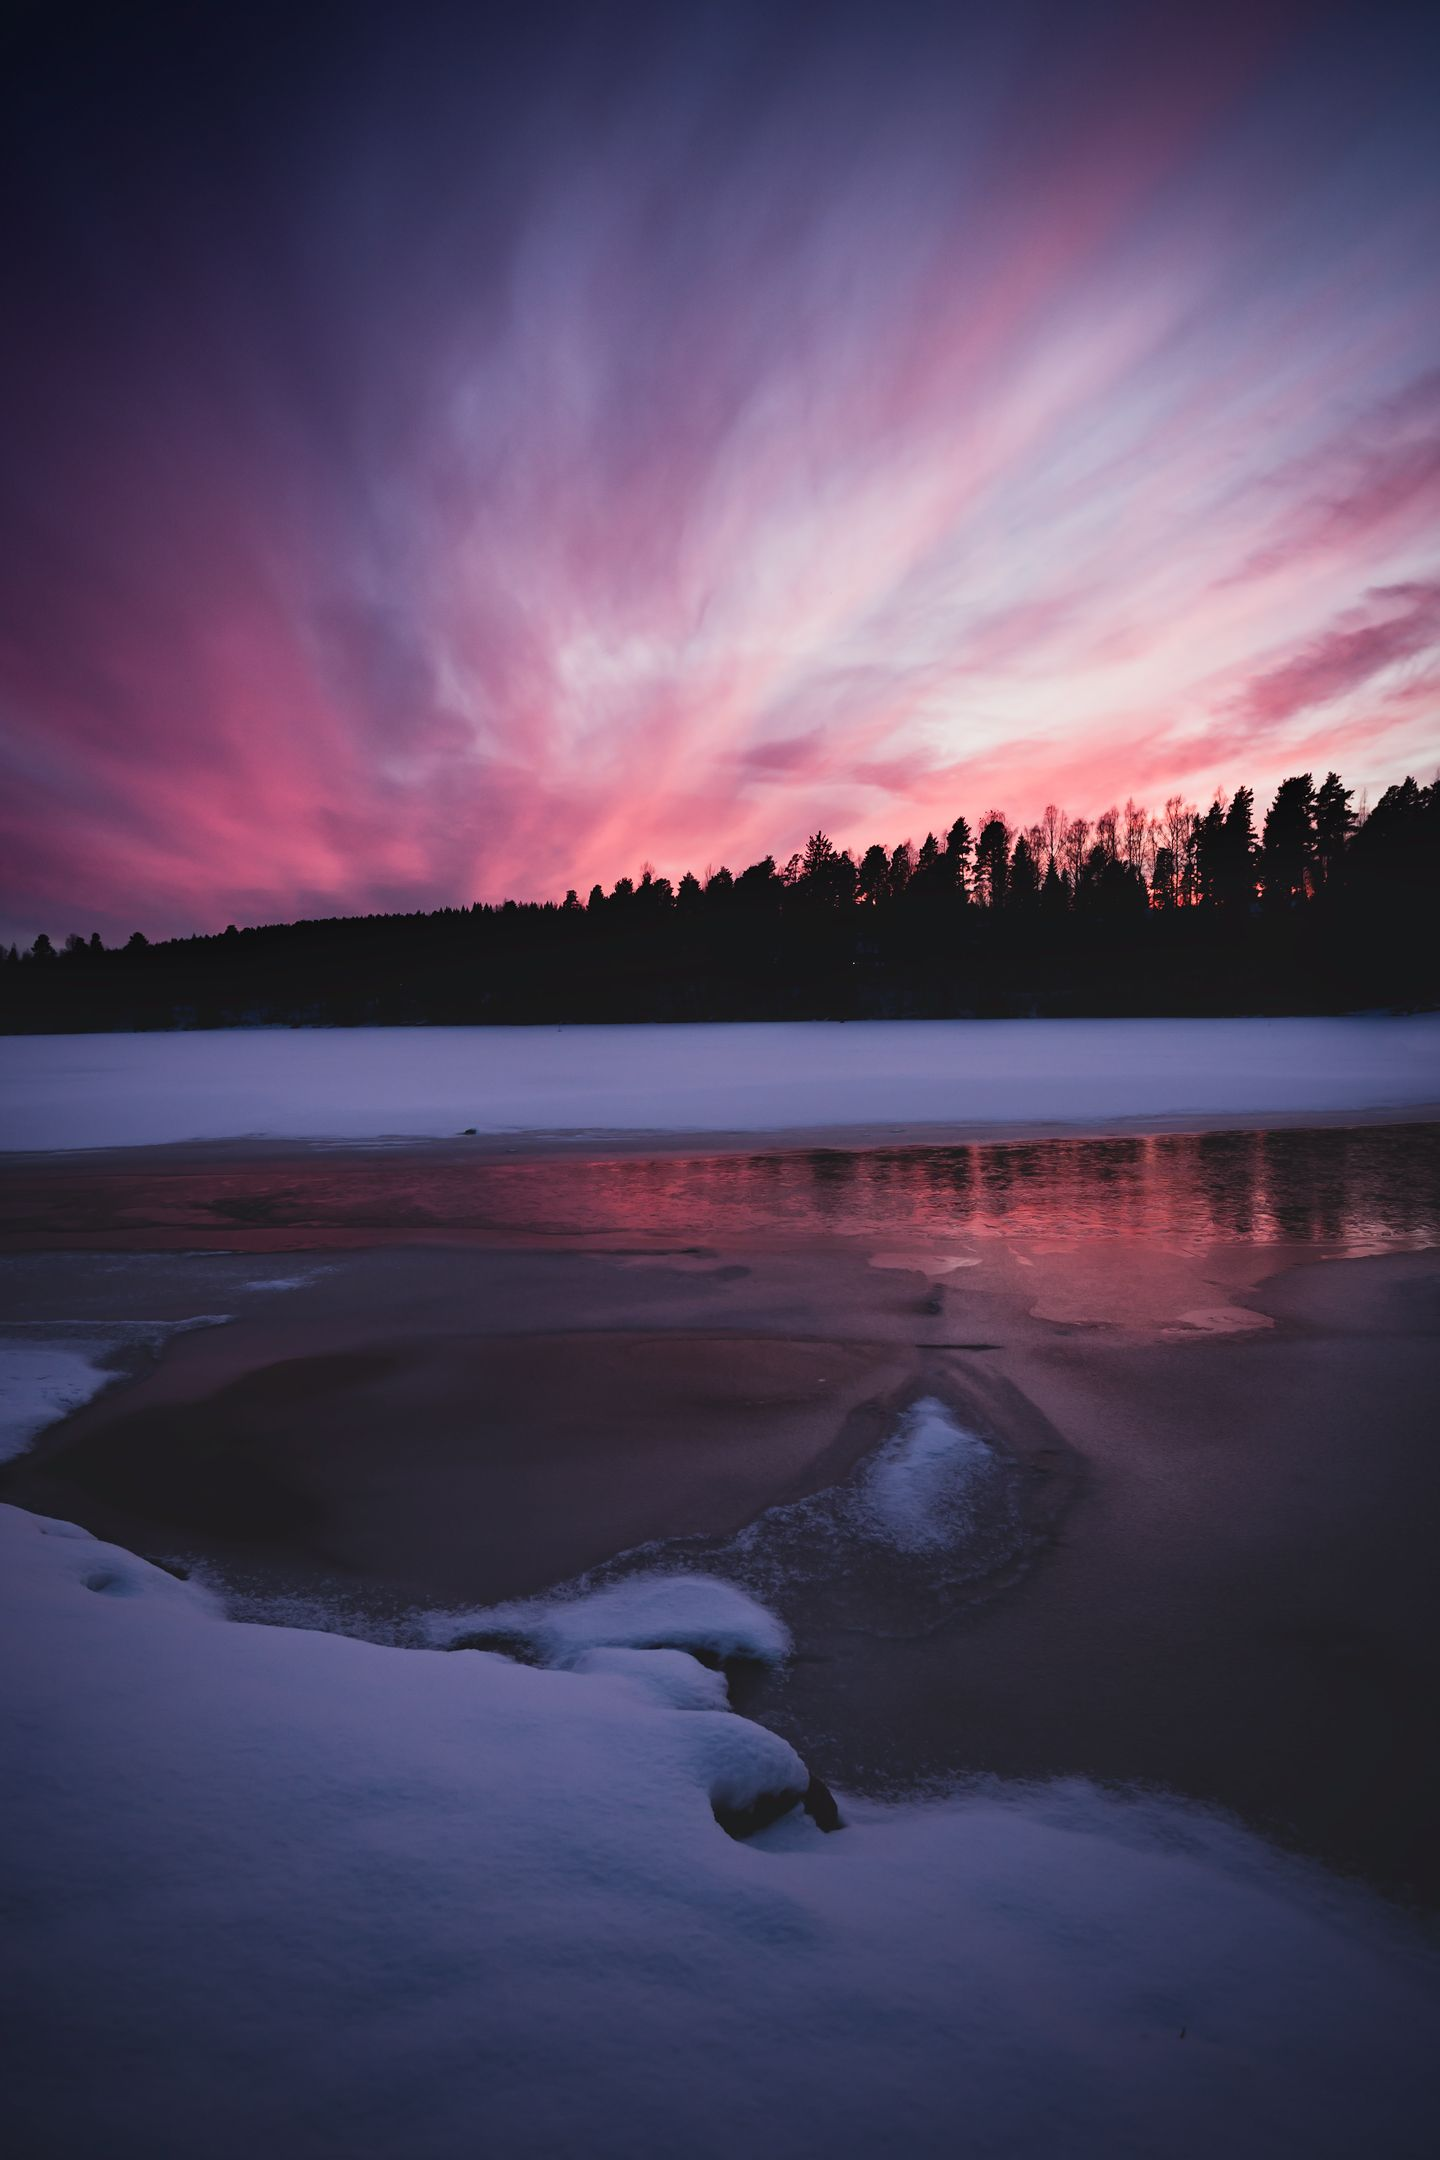 Pin On Beautiful Mother Earth Nature Traveller Wallpaper sunset lake ice evening sky